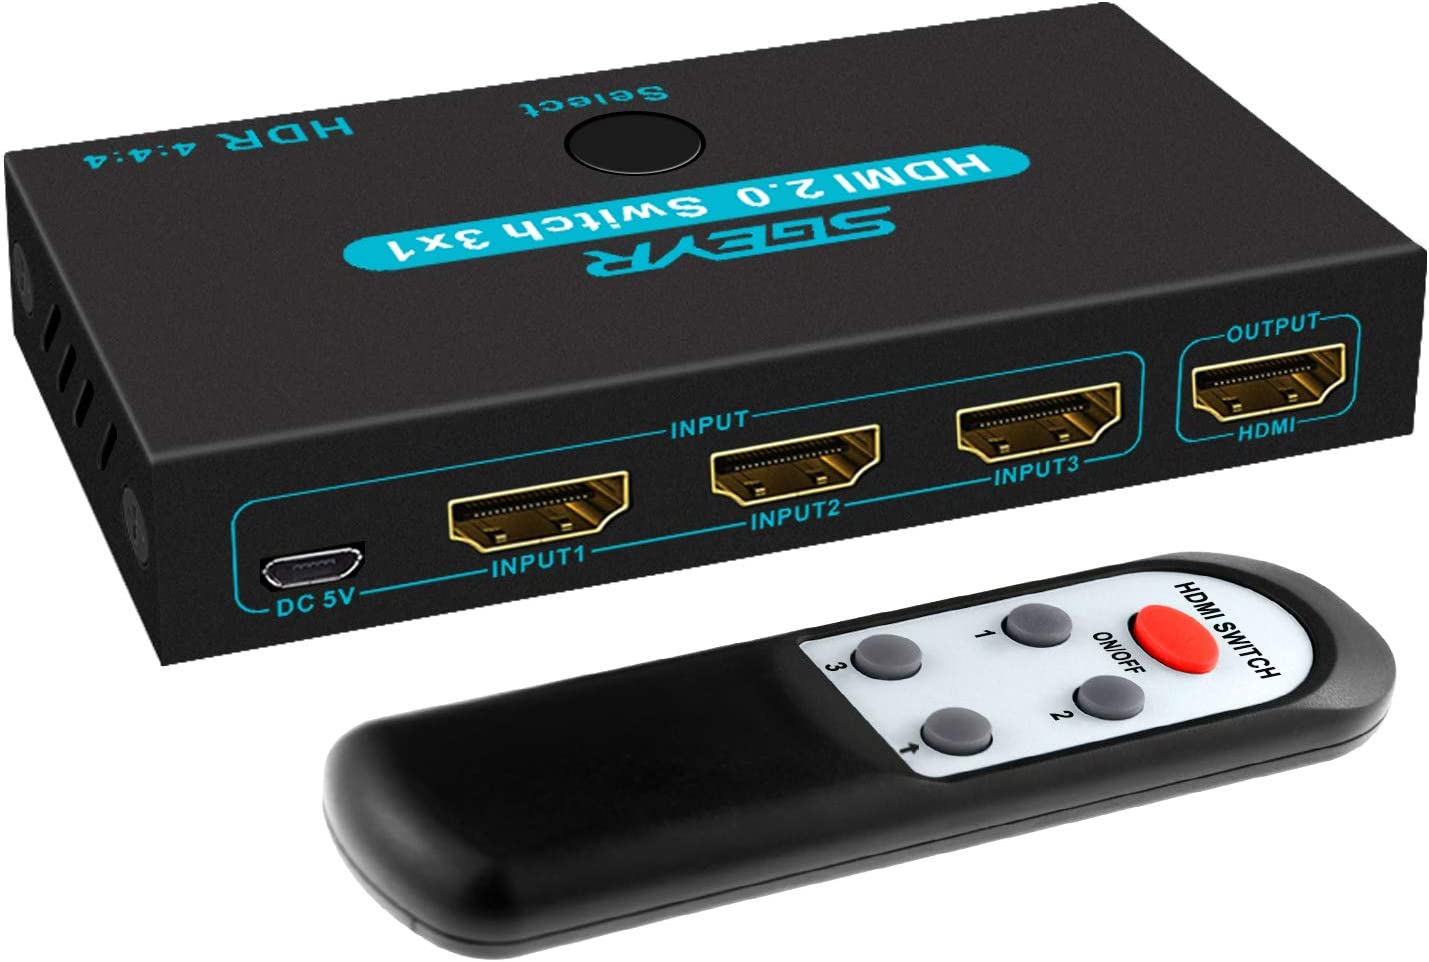 SGEYR HDMI 2.0 Switch Splitter 3 Port 4K HDMI Switcher 3 in 1 Out Metal HDMI Switches Selector Box with IR Remote Control Support HDCP 2.2 Support 4K@60Hz Ultra HD 3D 2160P 1080P